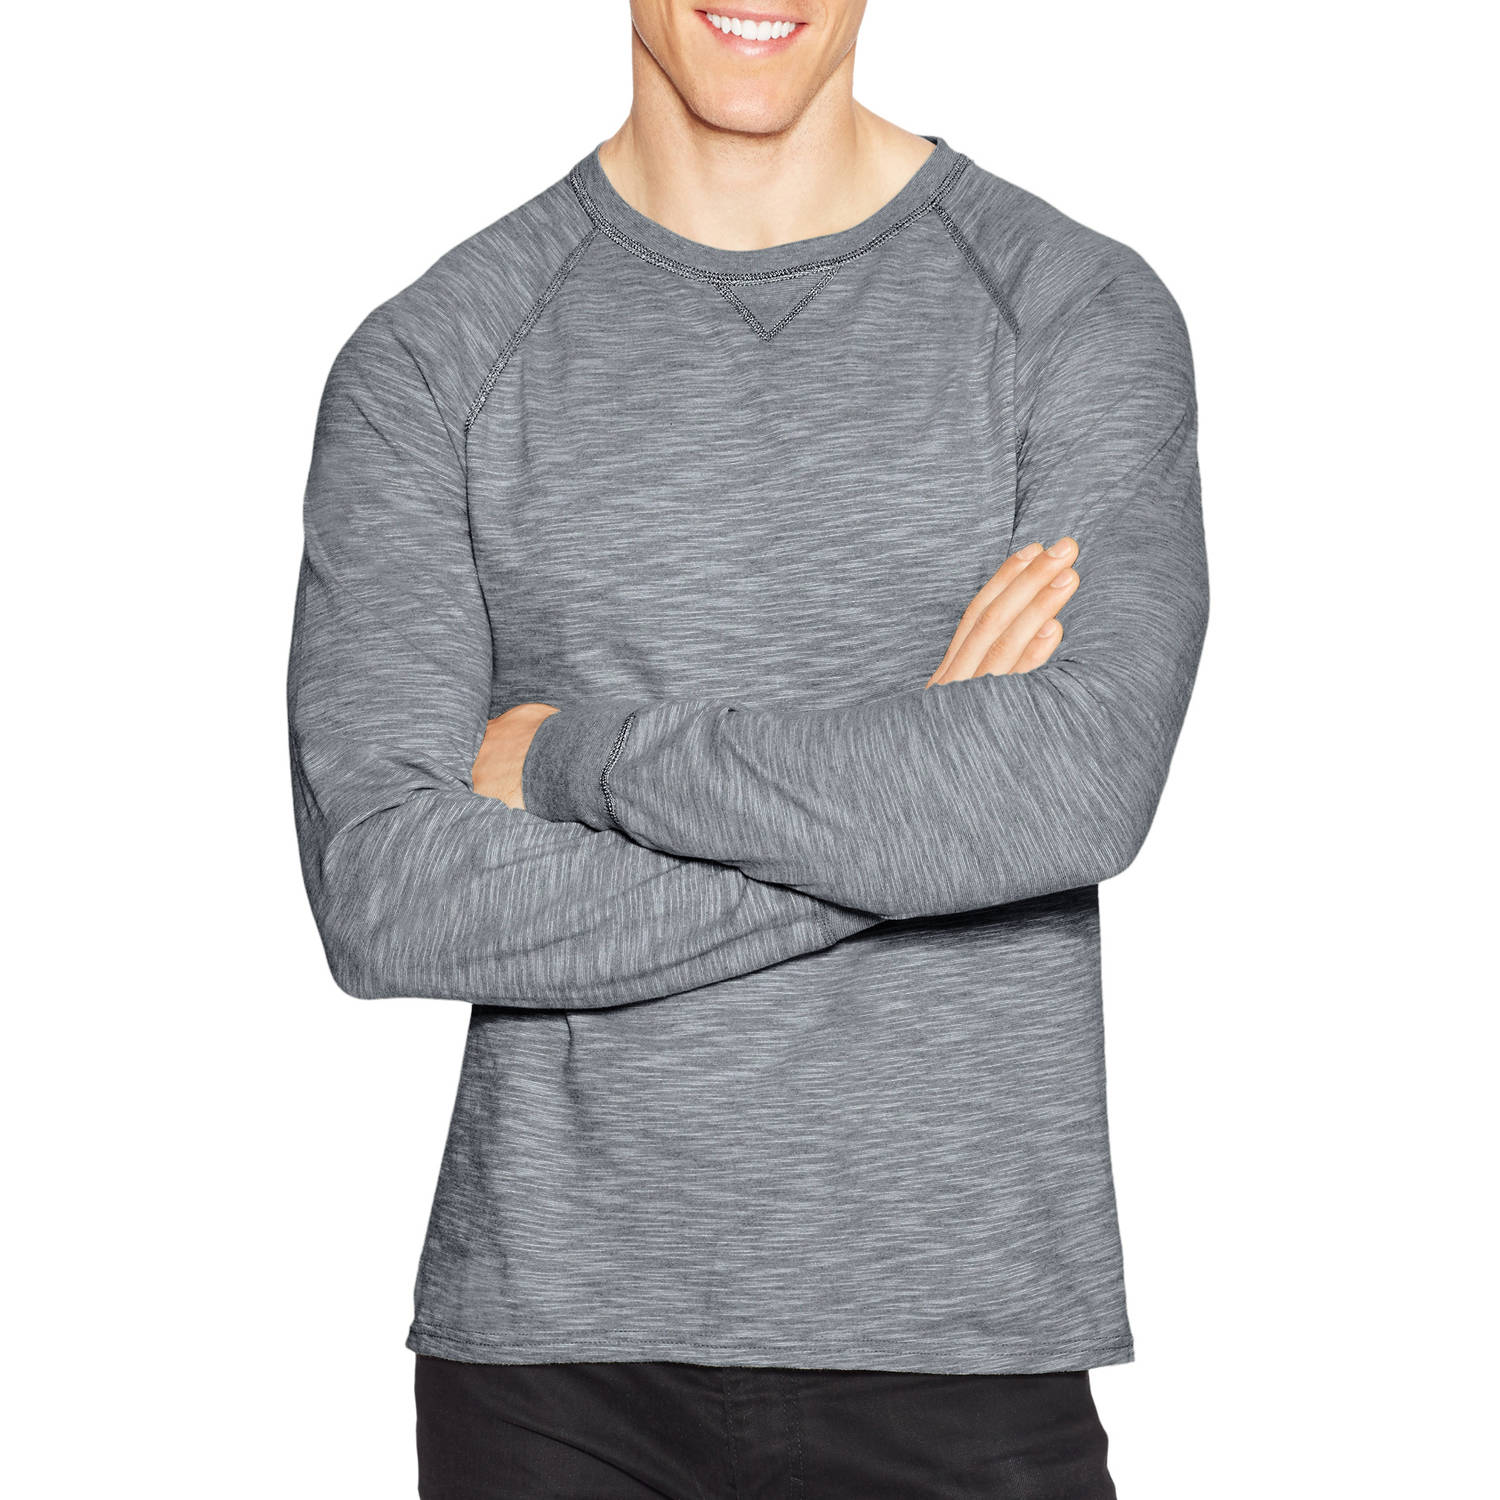 Hanes Men's Long Sleeve Slub Jersey T-shirt